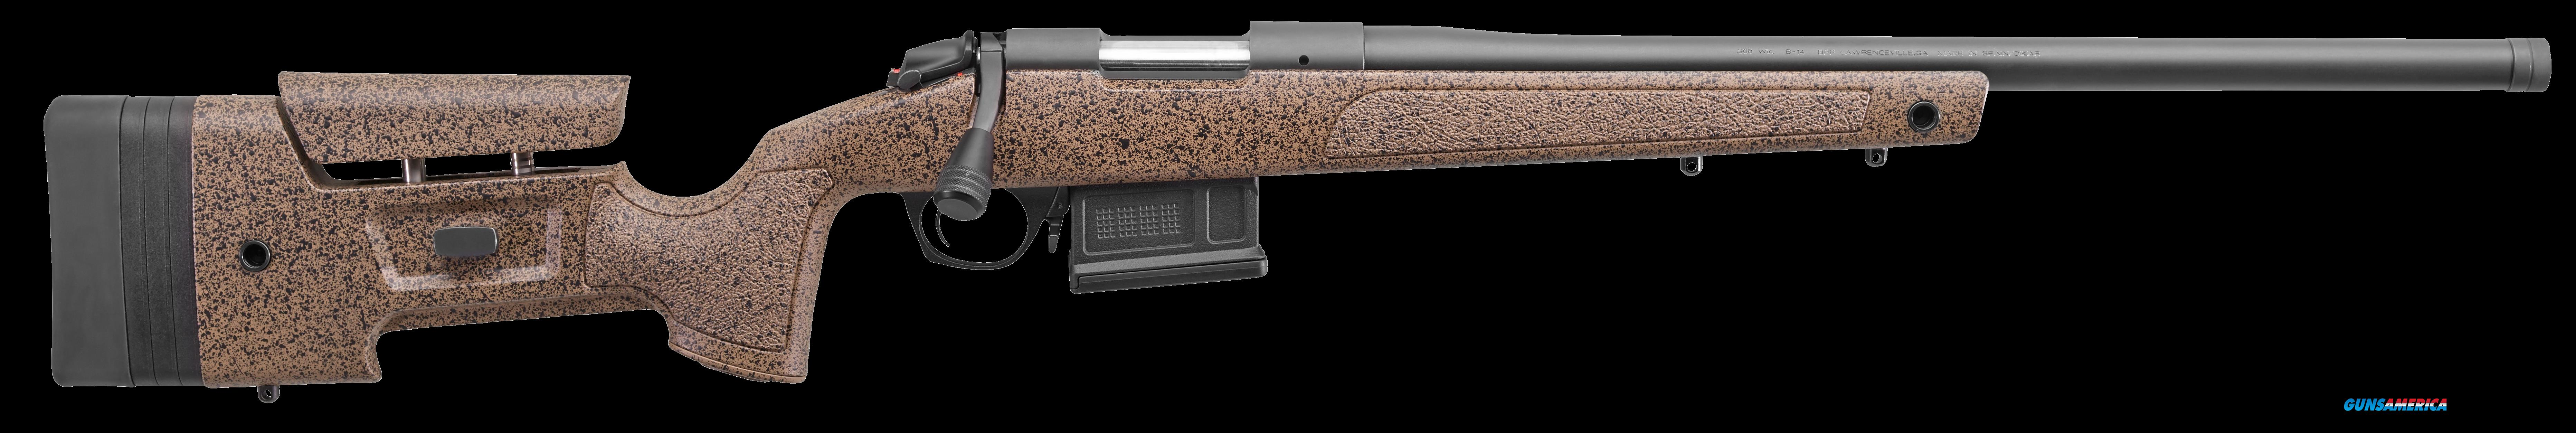 "Bergara Rifles B14S351 B-14 HMR Bolt 308 Winchester/7.62 NATO 20"" 5+1 Synthetic/Mini-Chassis Brown  Guns > Rifles > B Misc Rifles"